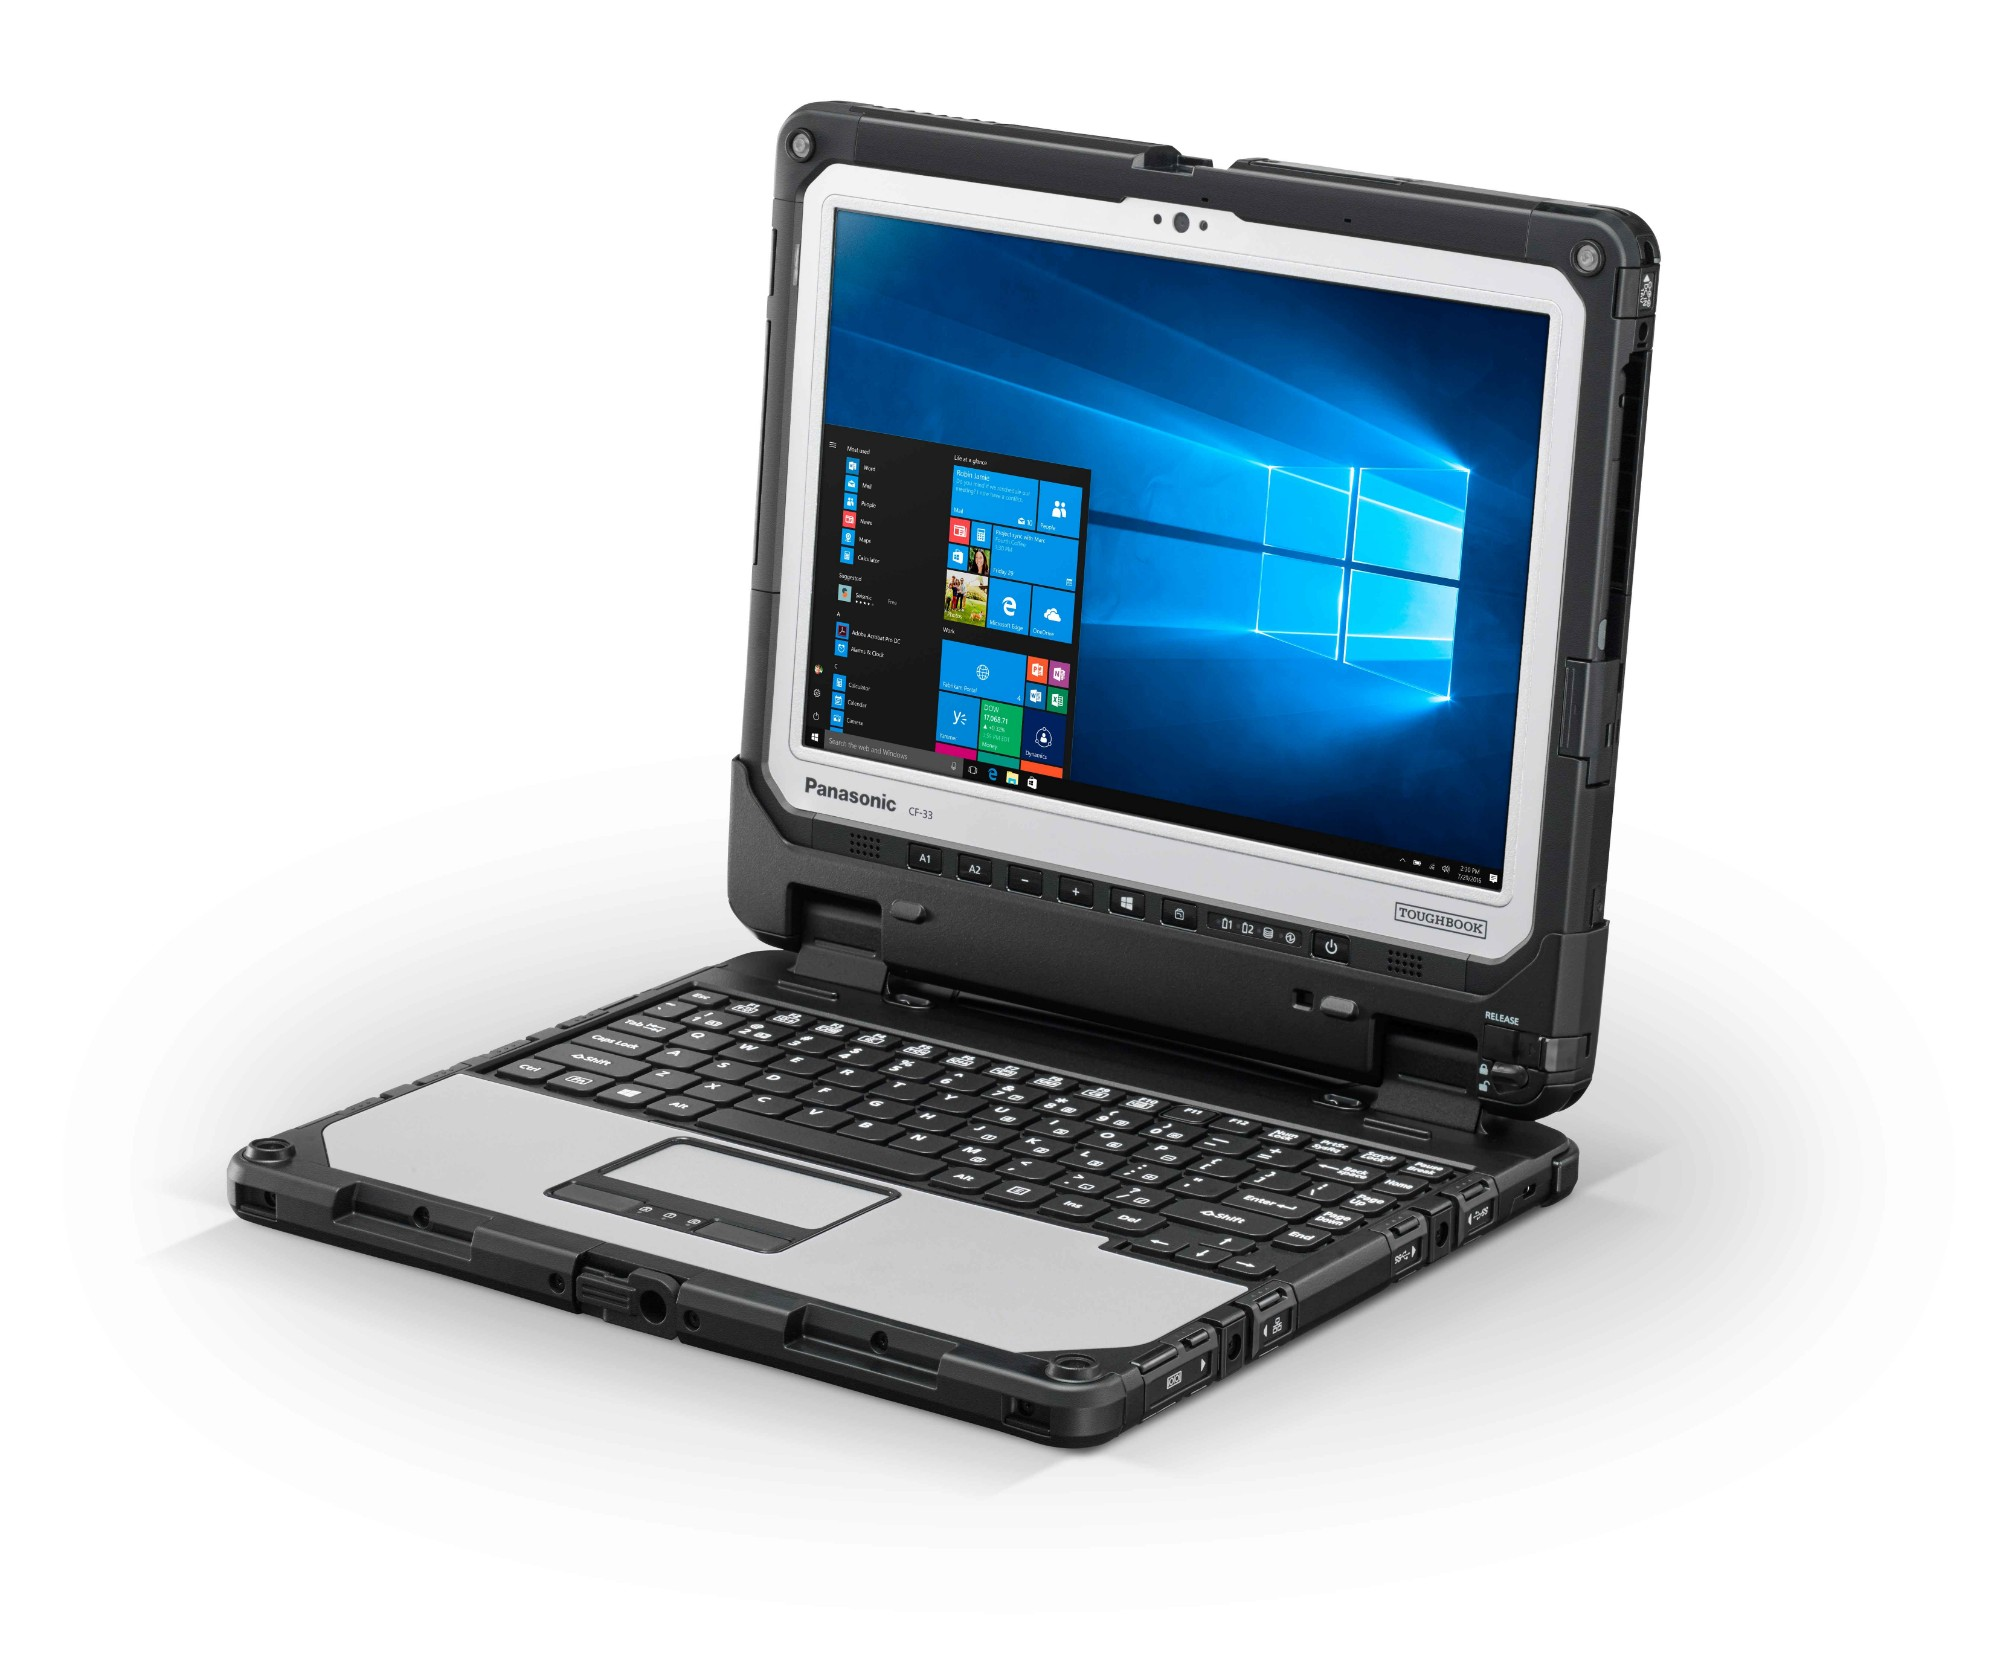 Panasonic Toughbook CF-33 - Tablet - with keyboard dock - Core i5 7300U / 2.6 GHz - Win 10 Pro - 8 G